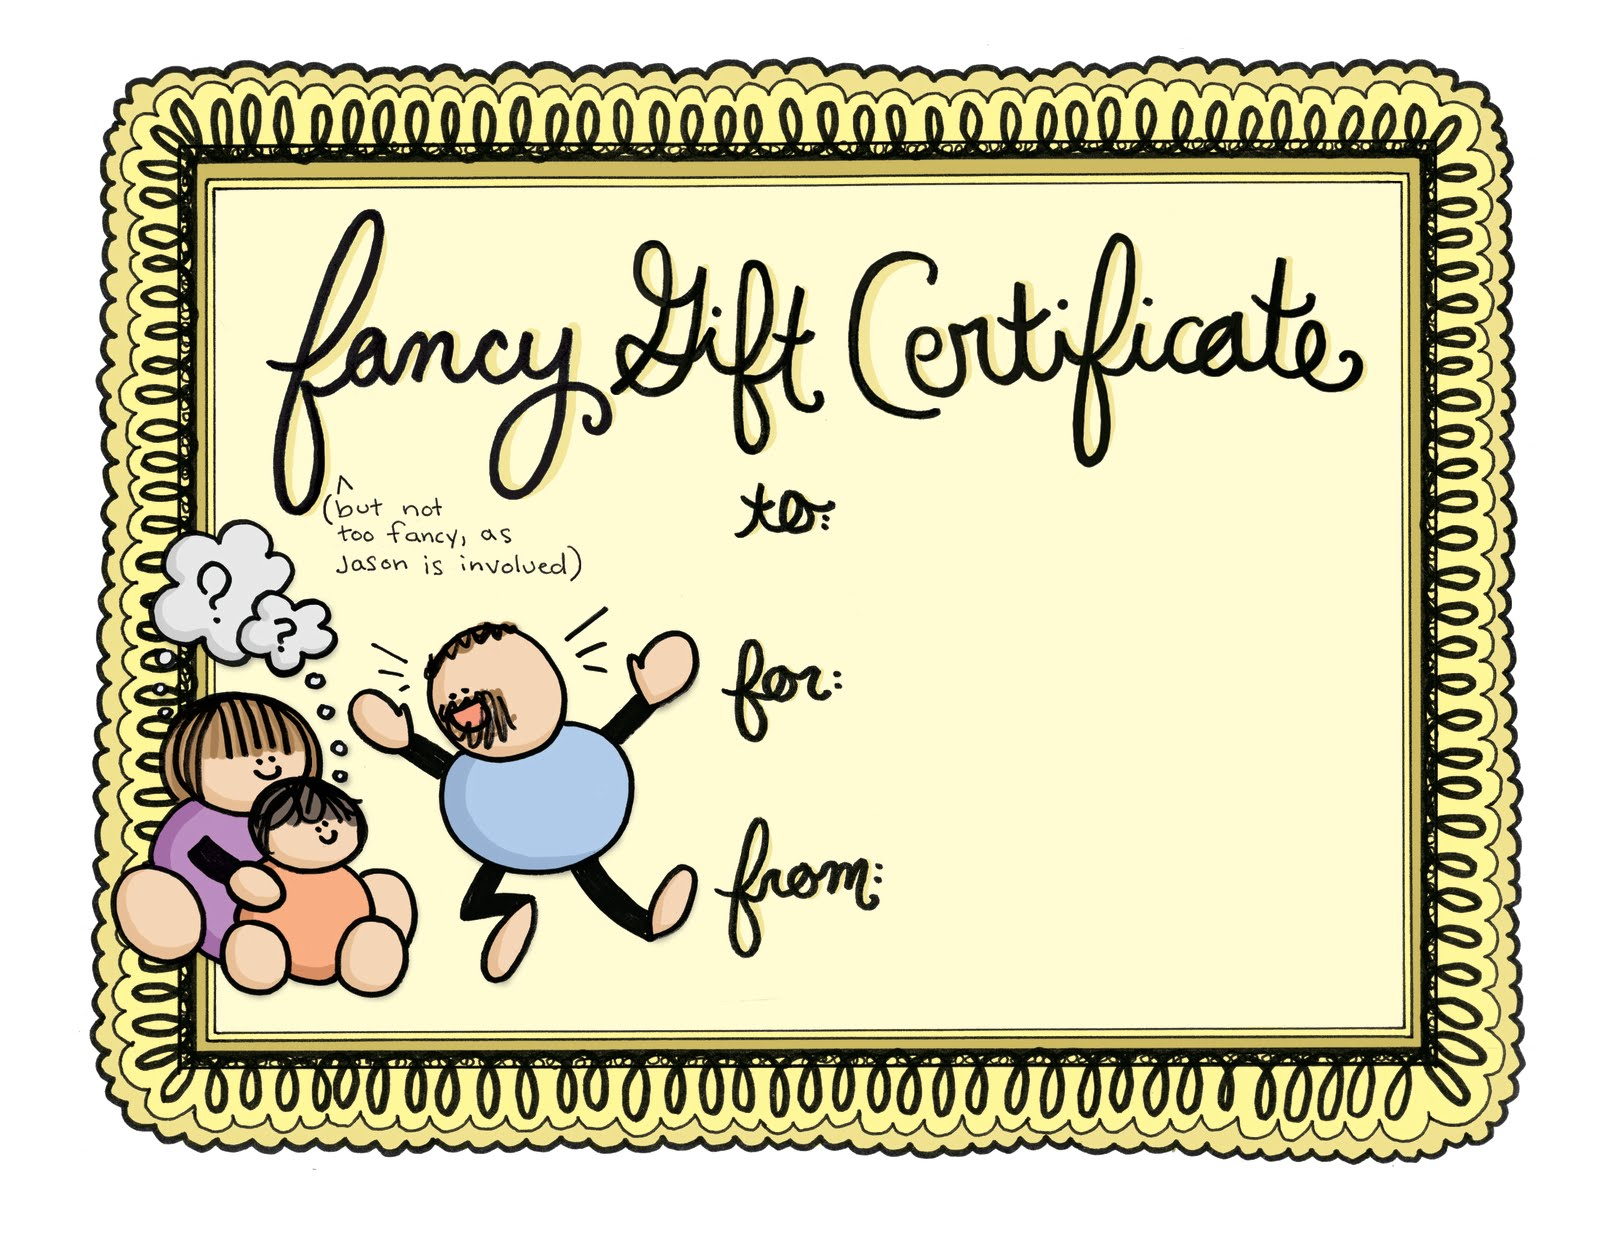 Babysitting gift certificate designs templates tattoo for Babysitting gift certificate template